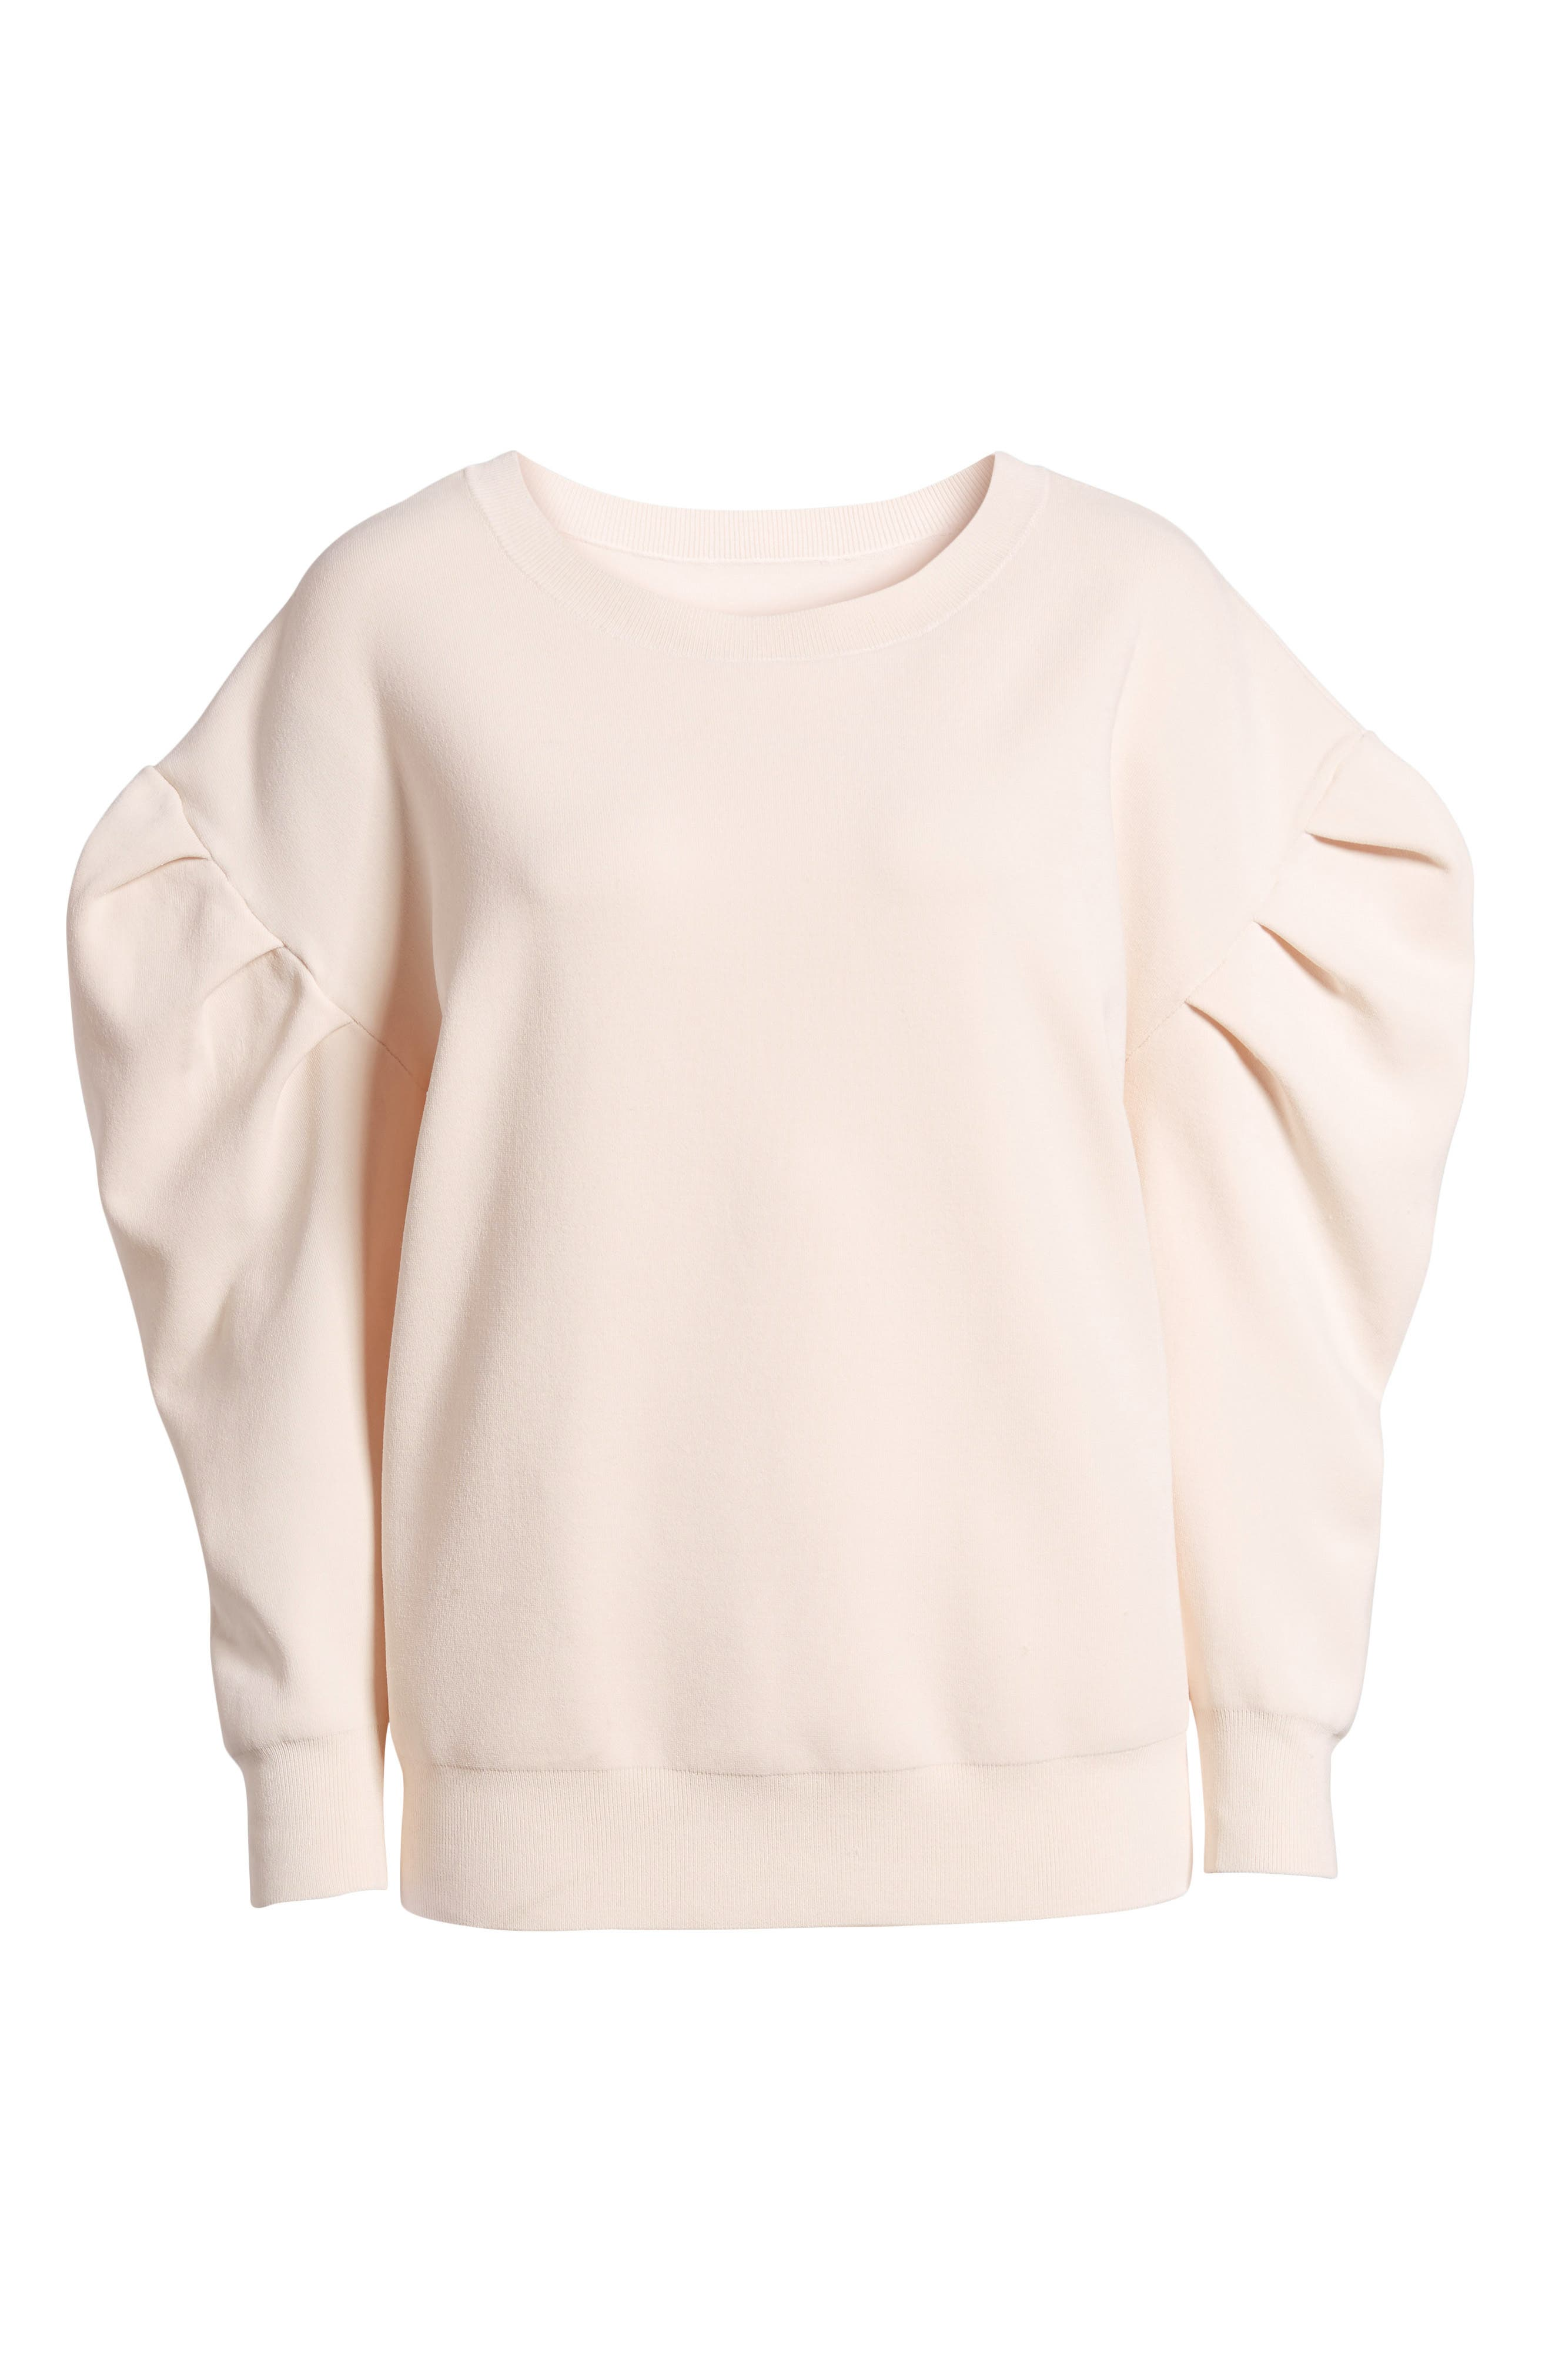 Puff Sleeve Sweater,                             Alternate thumbnail 6, color,                             680